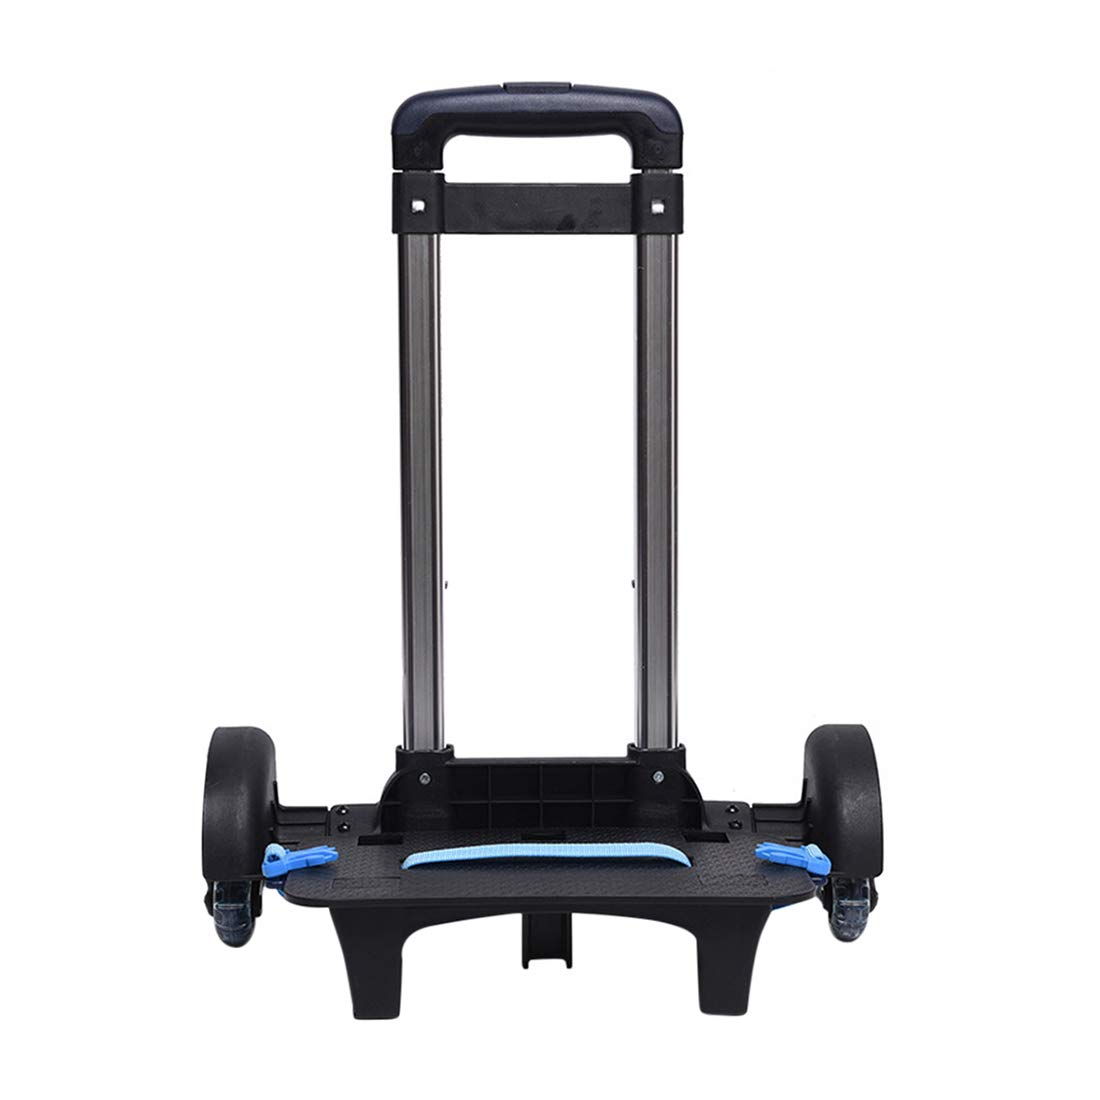 Durable Folding Trolley Luggage Backpack Cart 6 wheels 50kg+ Capacity Zhhlinyuan by Zhhlinyuan